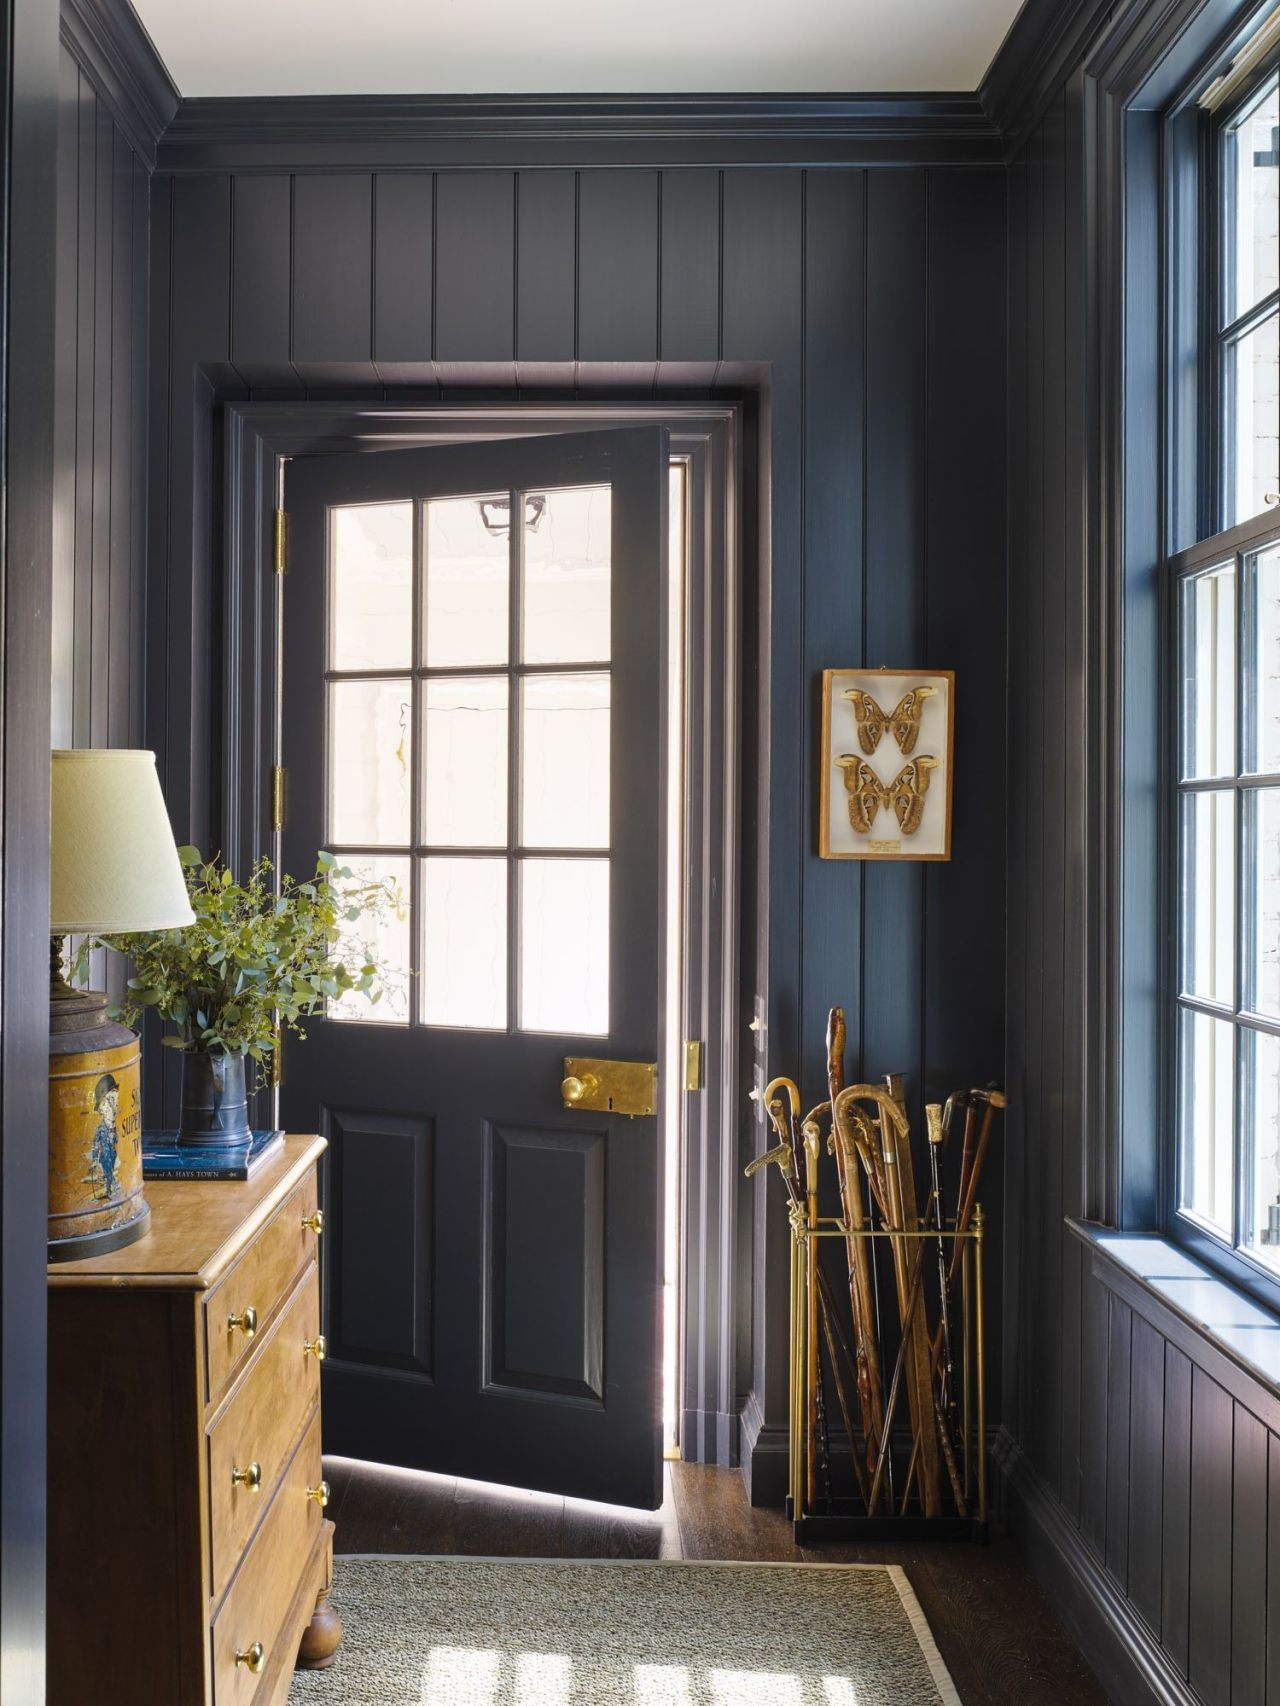 Wood Paneled Room Design: 15 Rooms That Prove Black Shiplap Is The New White Shiplap